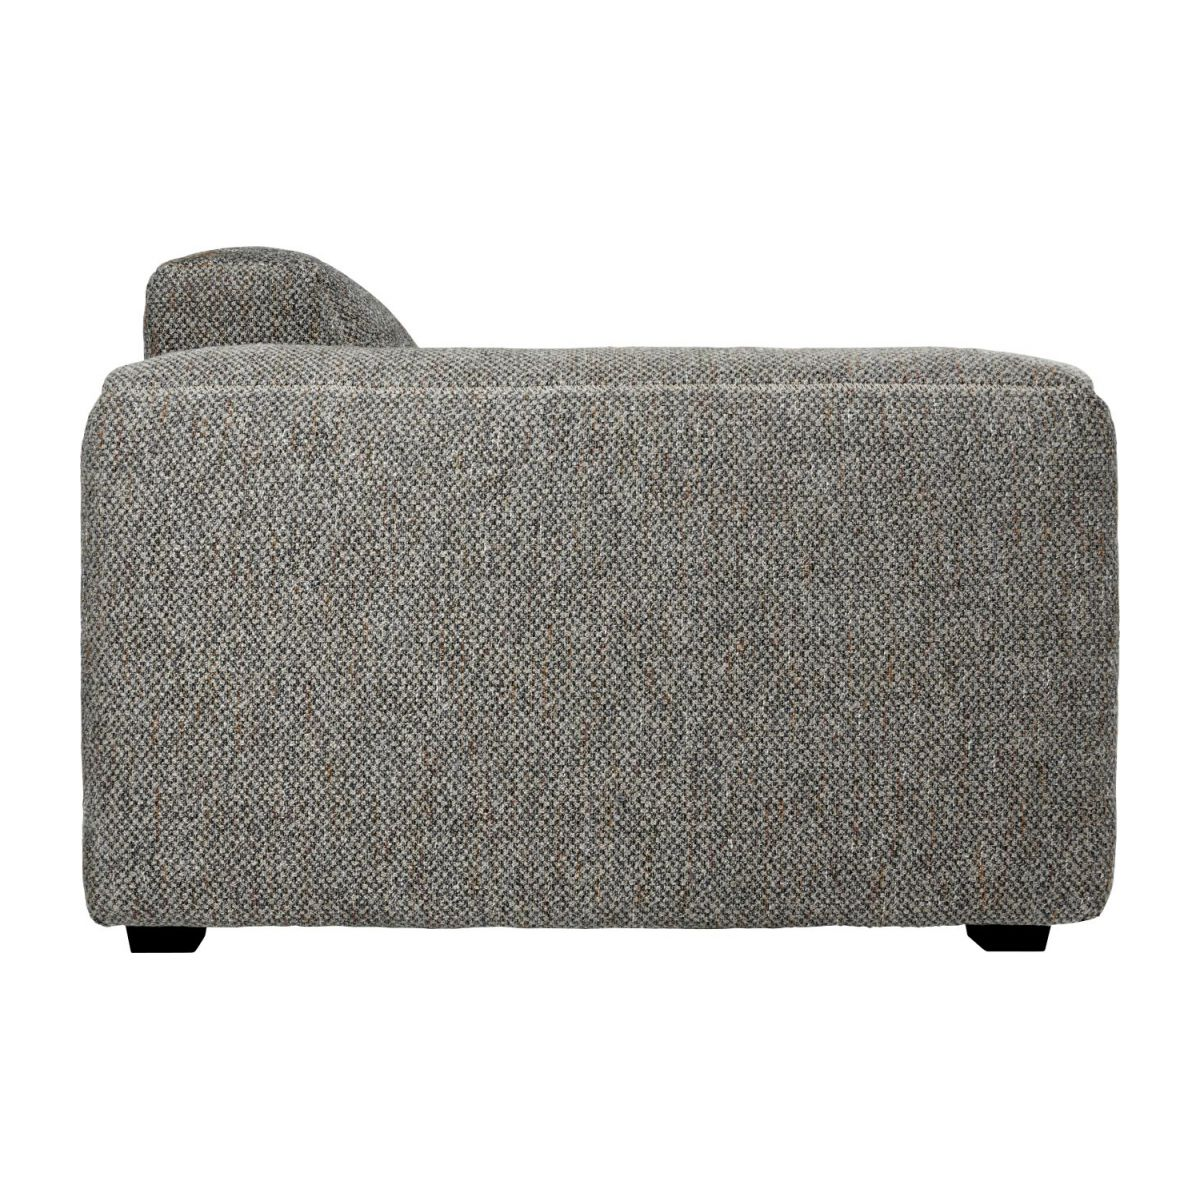 4-seter sofa, sort n°7